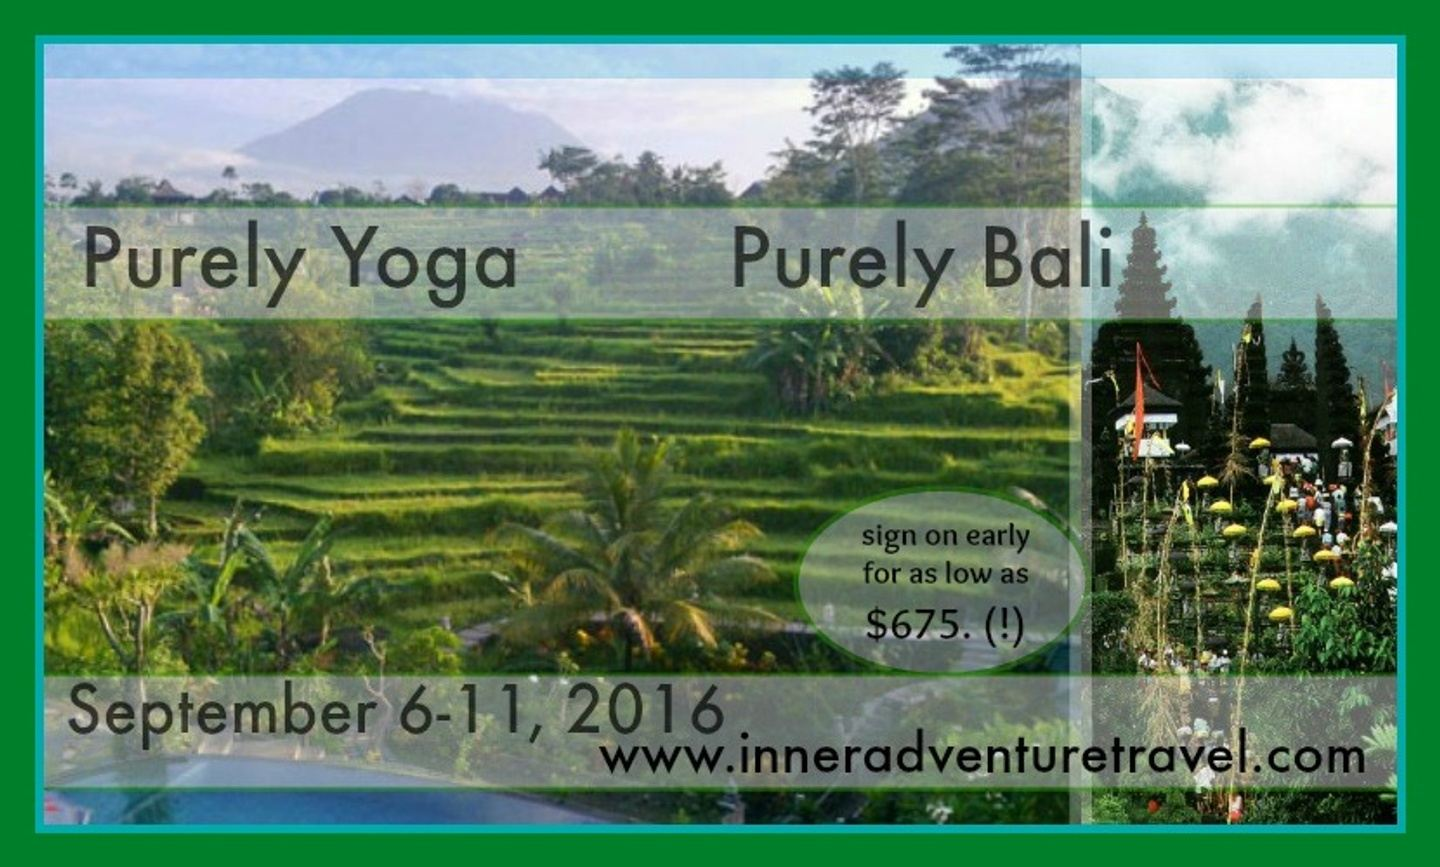 Purely Yoga - Purely Bali